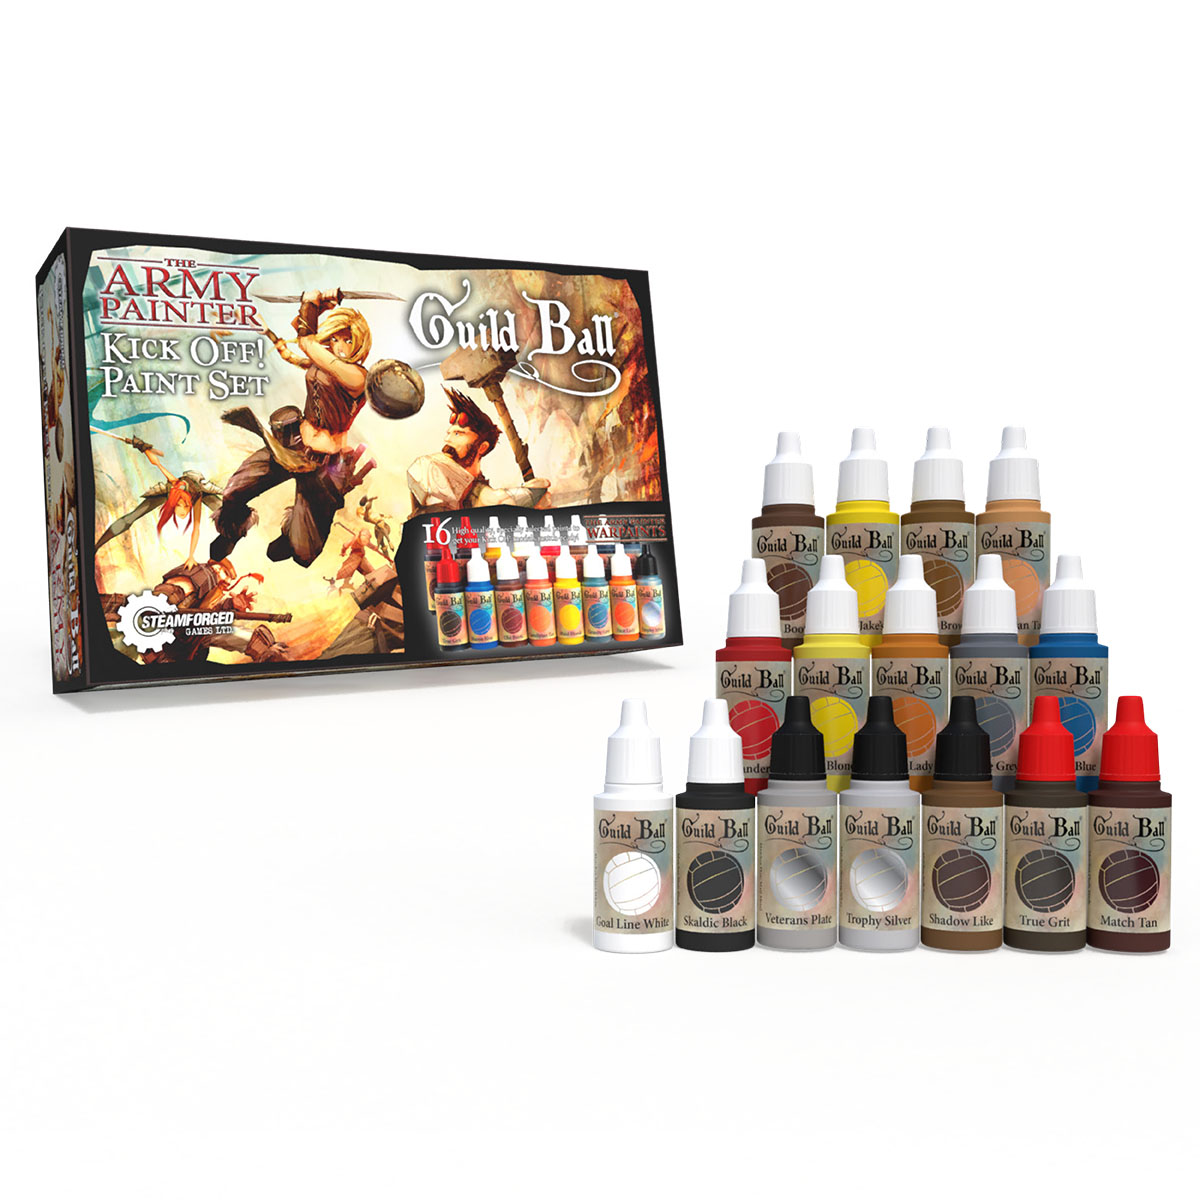 Army Painter Warpaints Guildball paint set